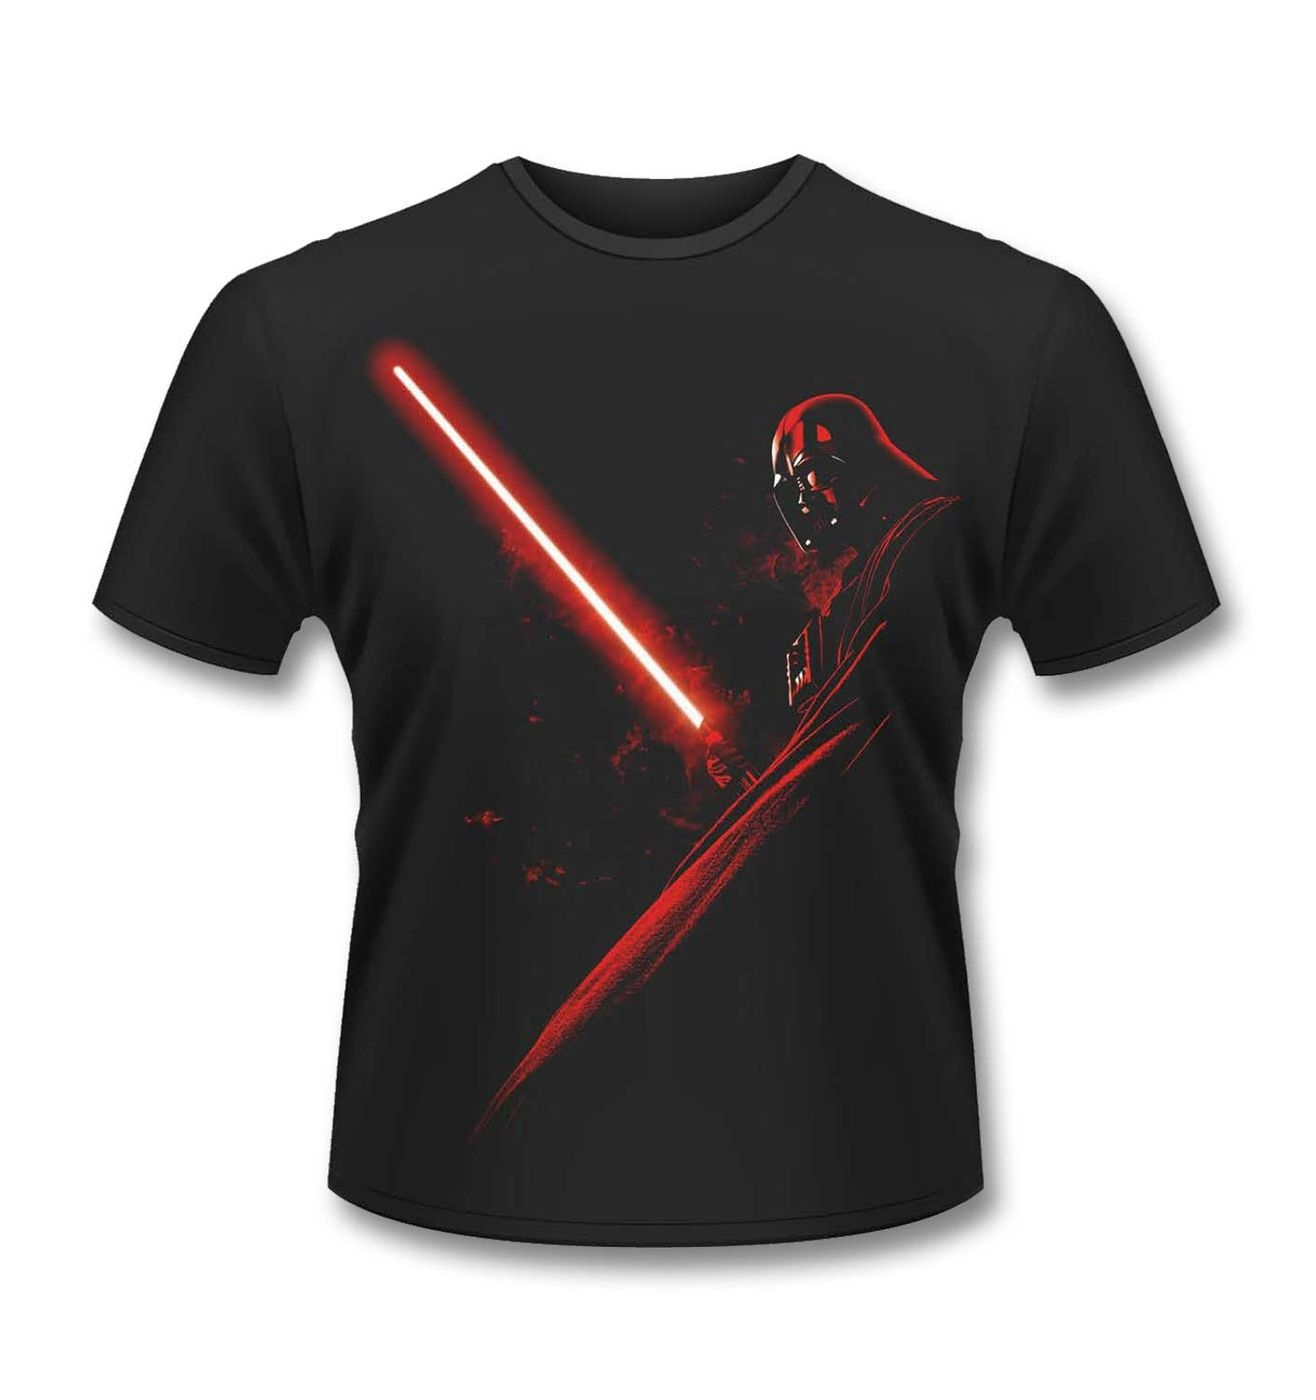 Darth Vader t-shirt - official Star Wars merchandise